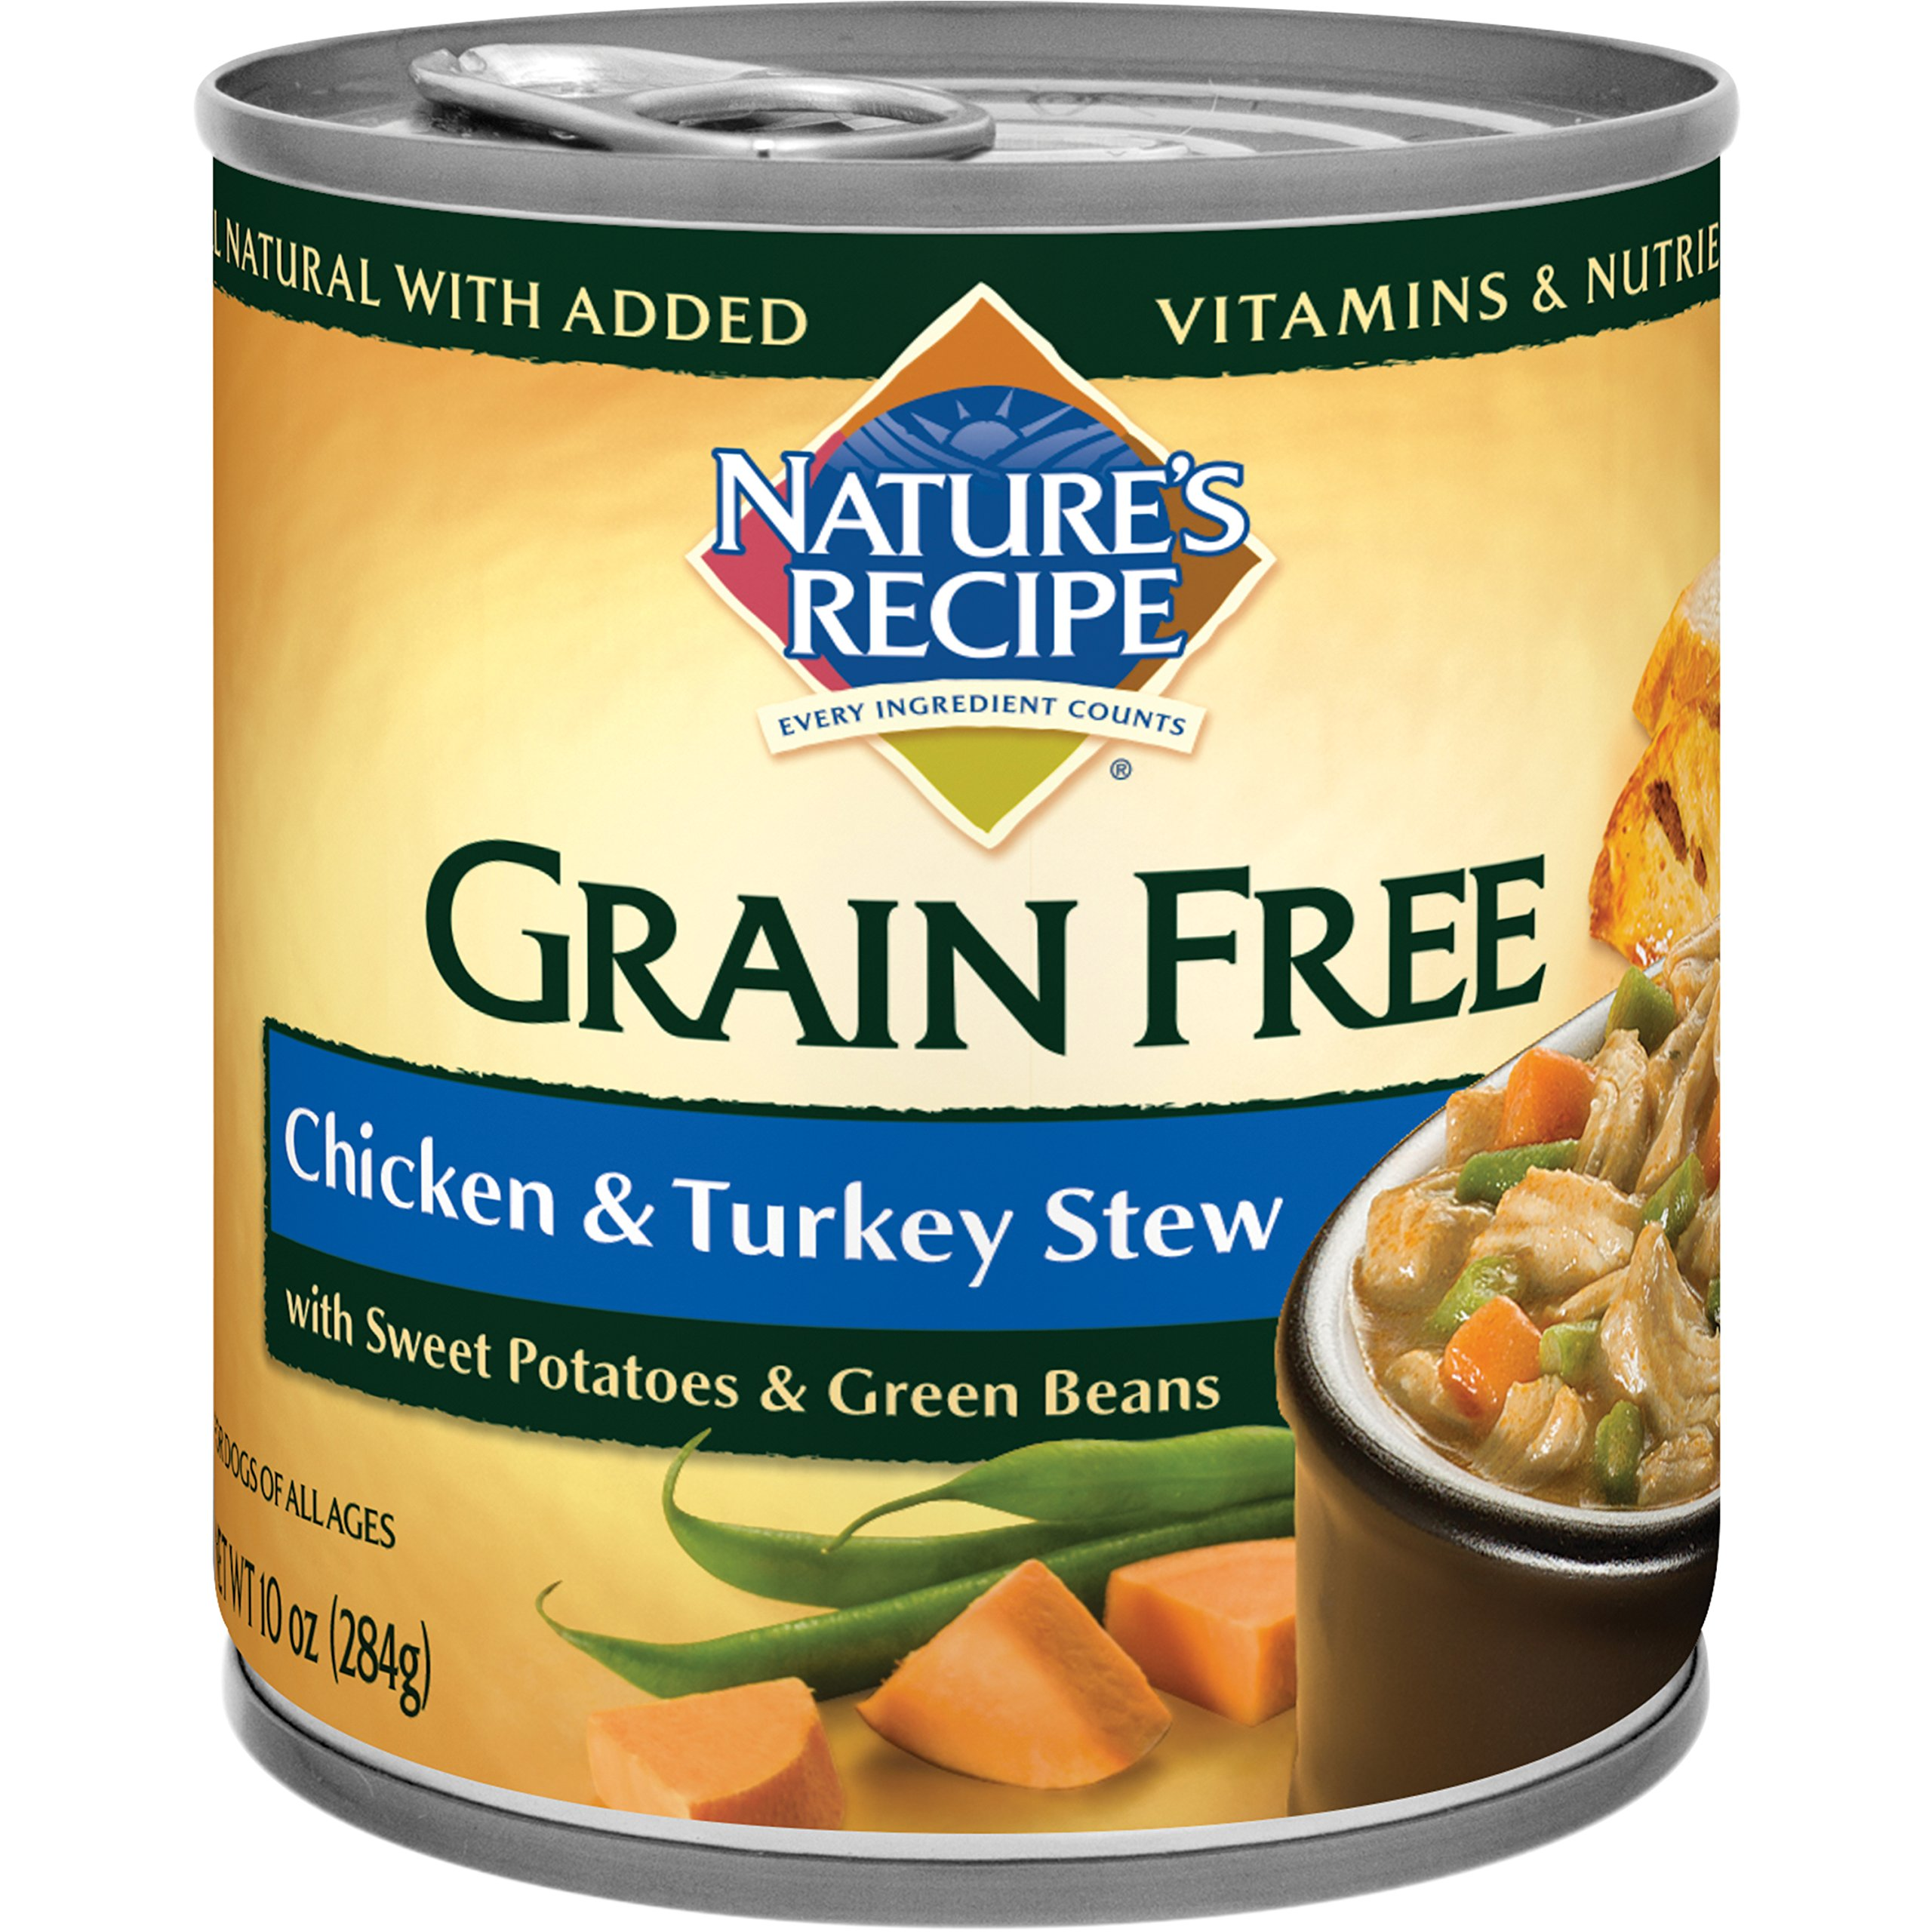 Nature's Recipe Grain Free Wet Dog Food, Chicken & Turkey Stew, 10-Ounce Cans (Pack of 24) by Nature's Recipe